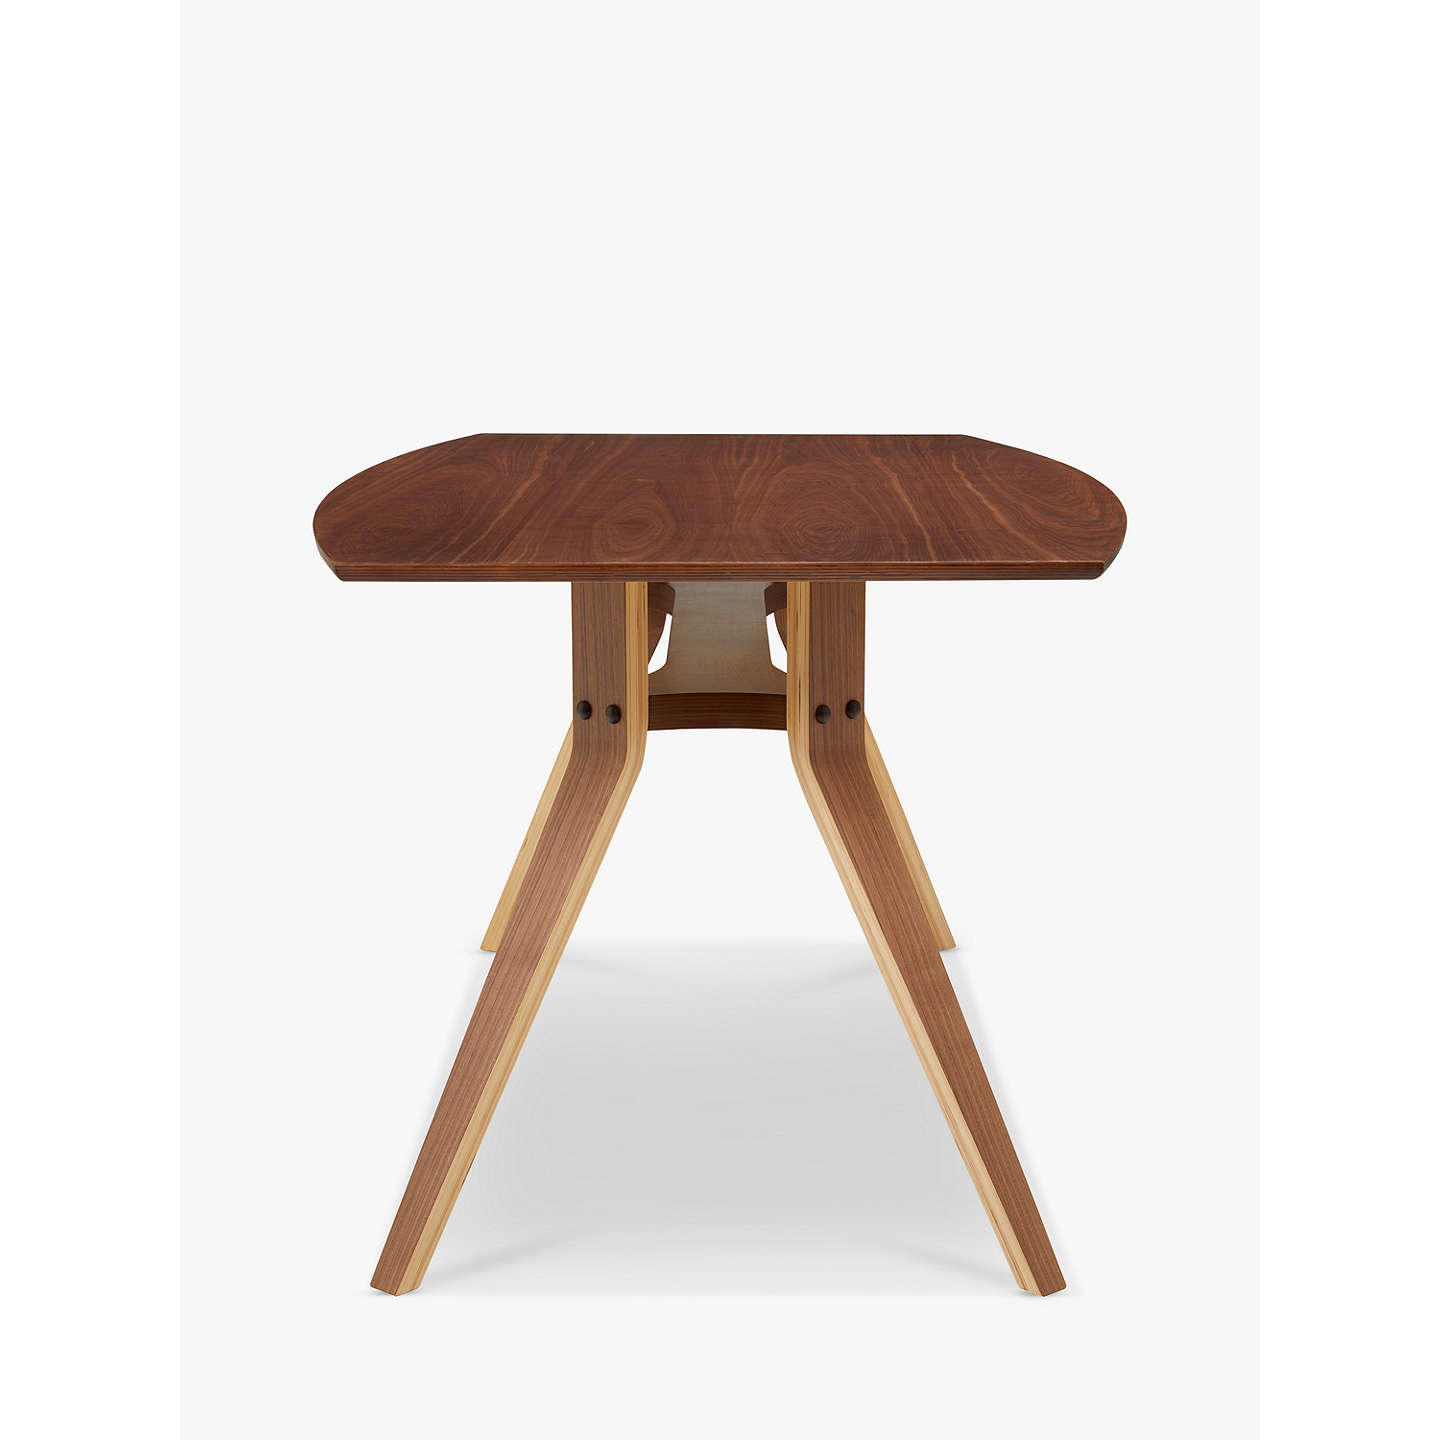 BuyJohn Lewis Radar 8 Seater Dining Table, Walnut Online at johnlewis.com